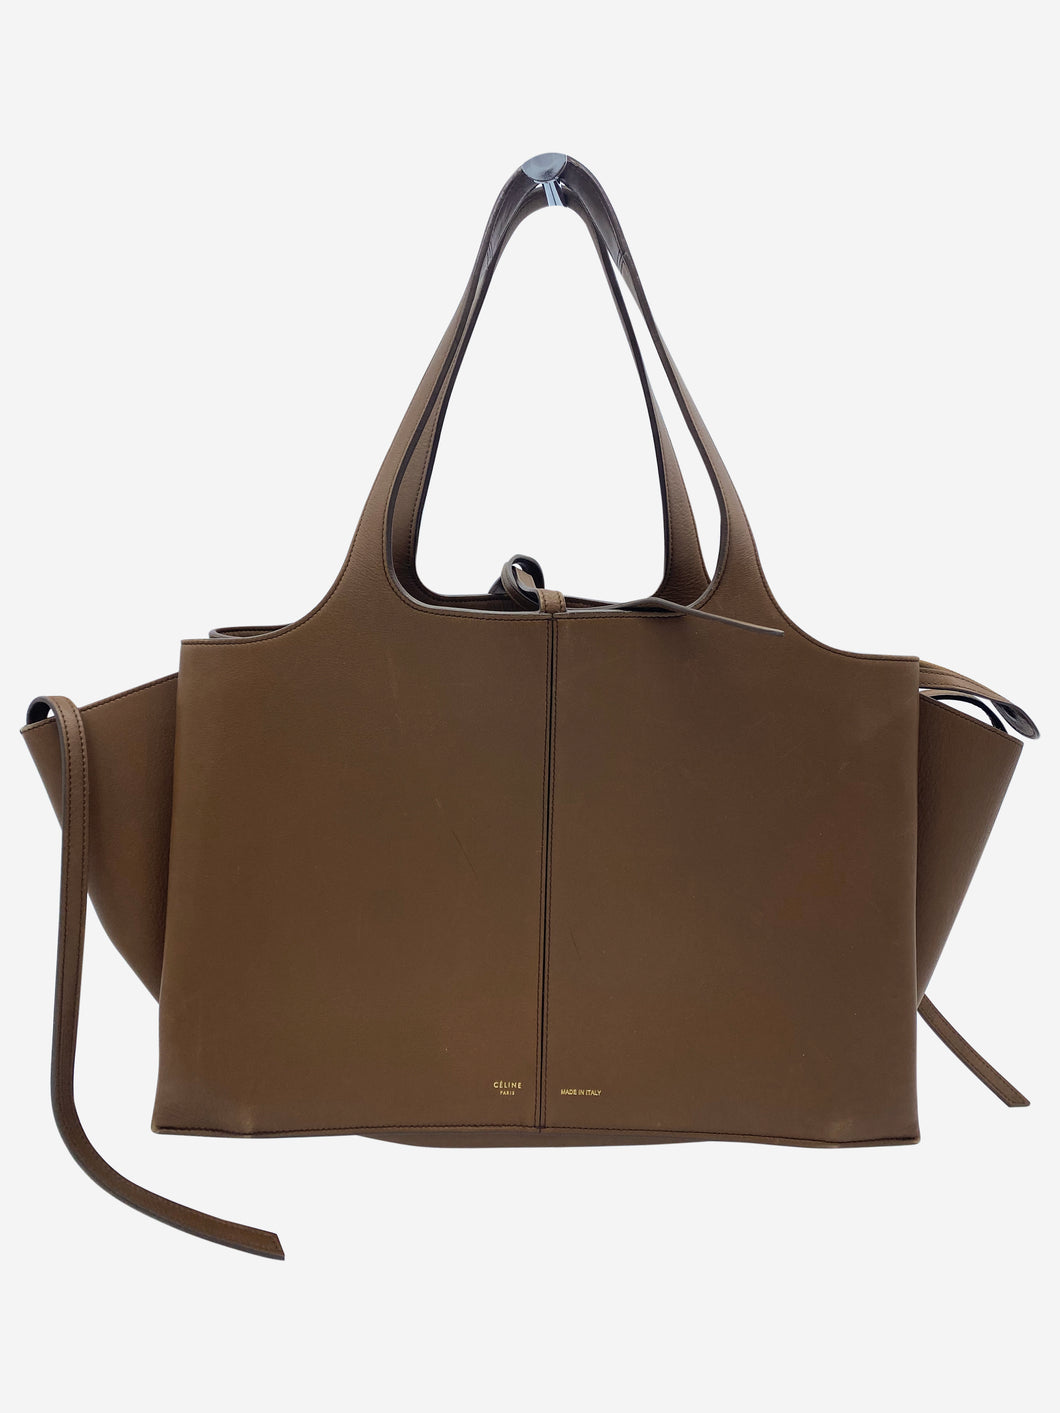 Brown tote bag with seperate built in dividers